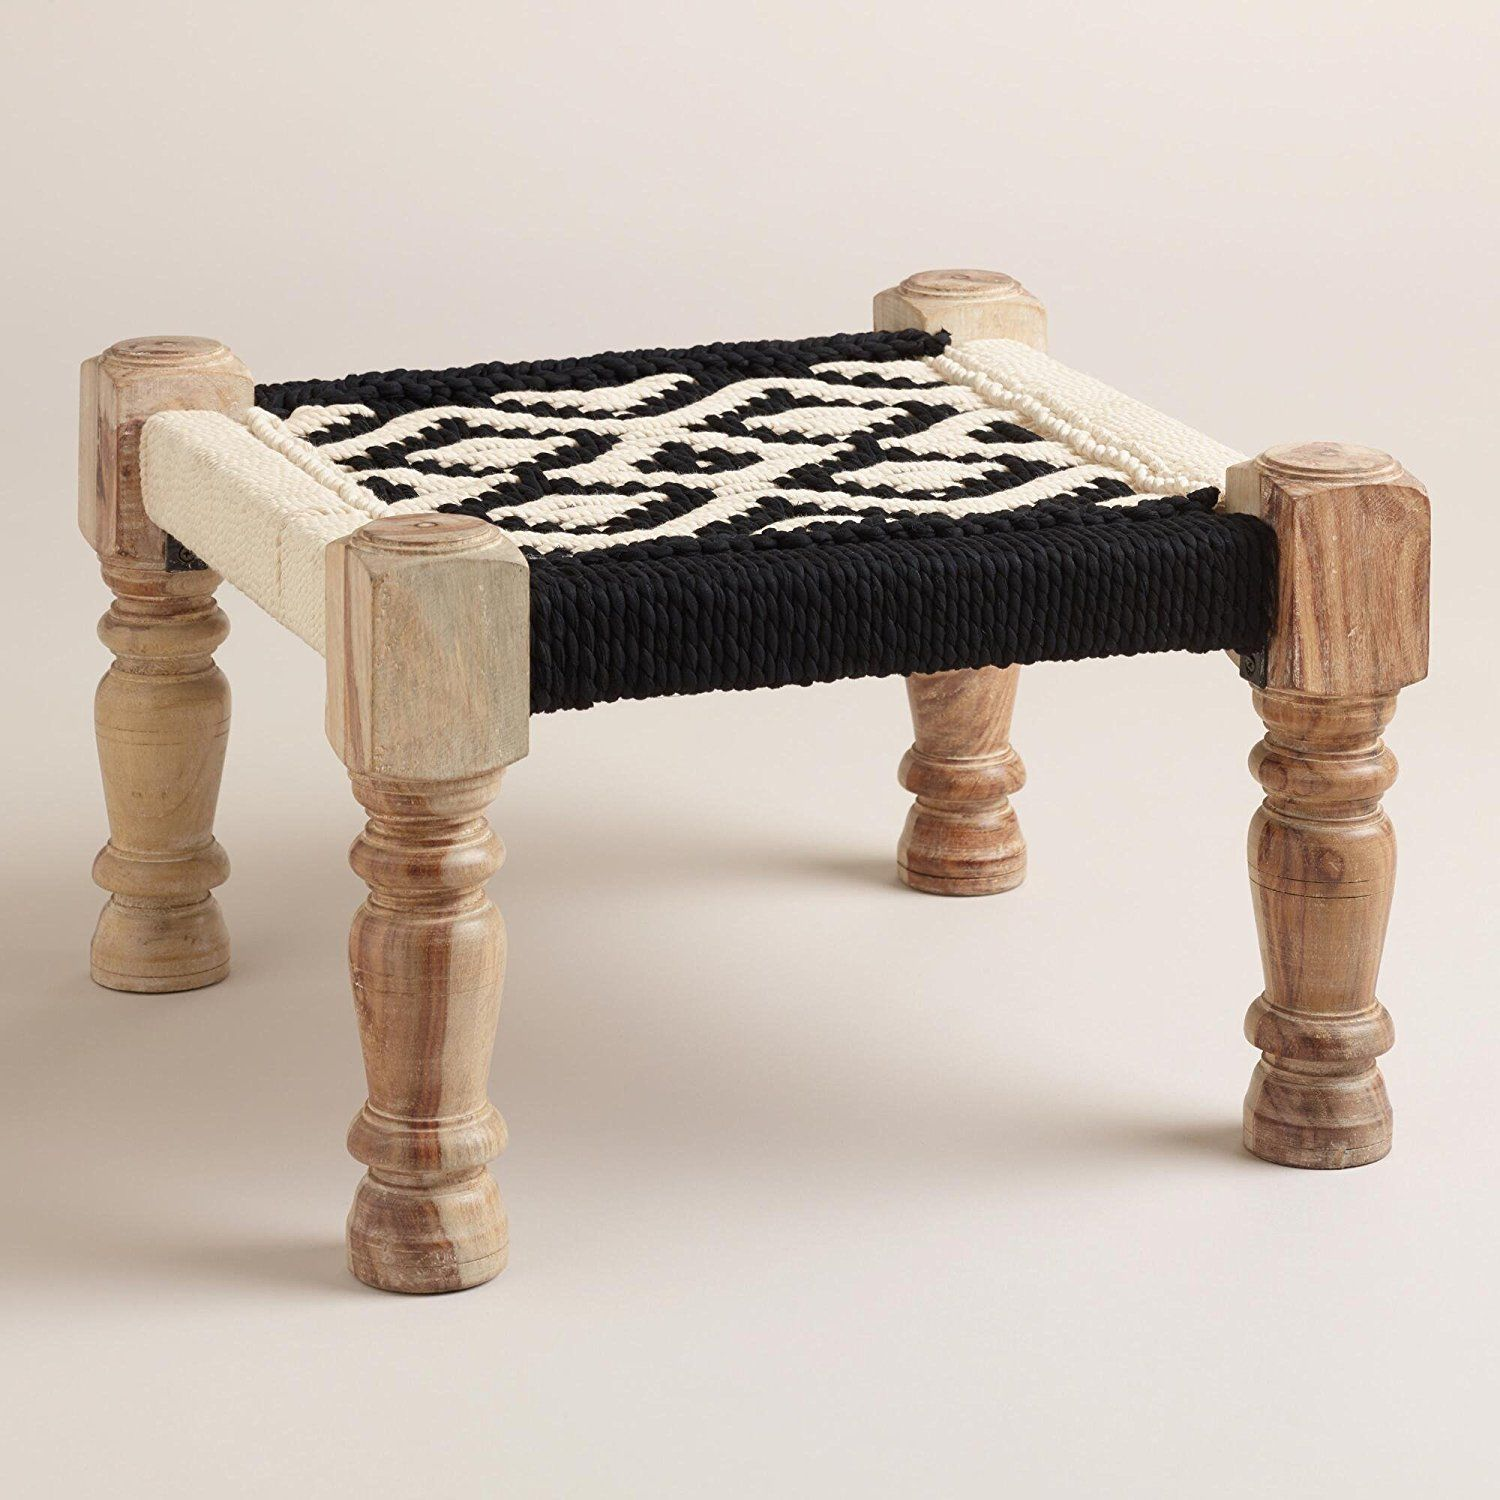 Miraculous Mm Beautiful Black And White Wood And Fabric Stool Alphanode Cool Chair Designs And Ideas Alphanodeonline